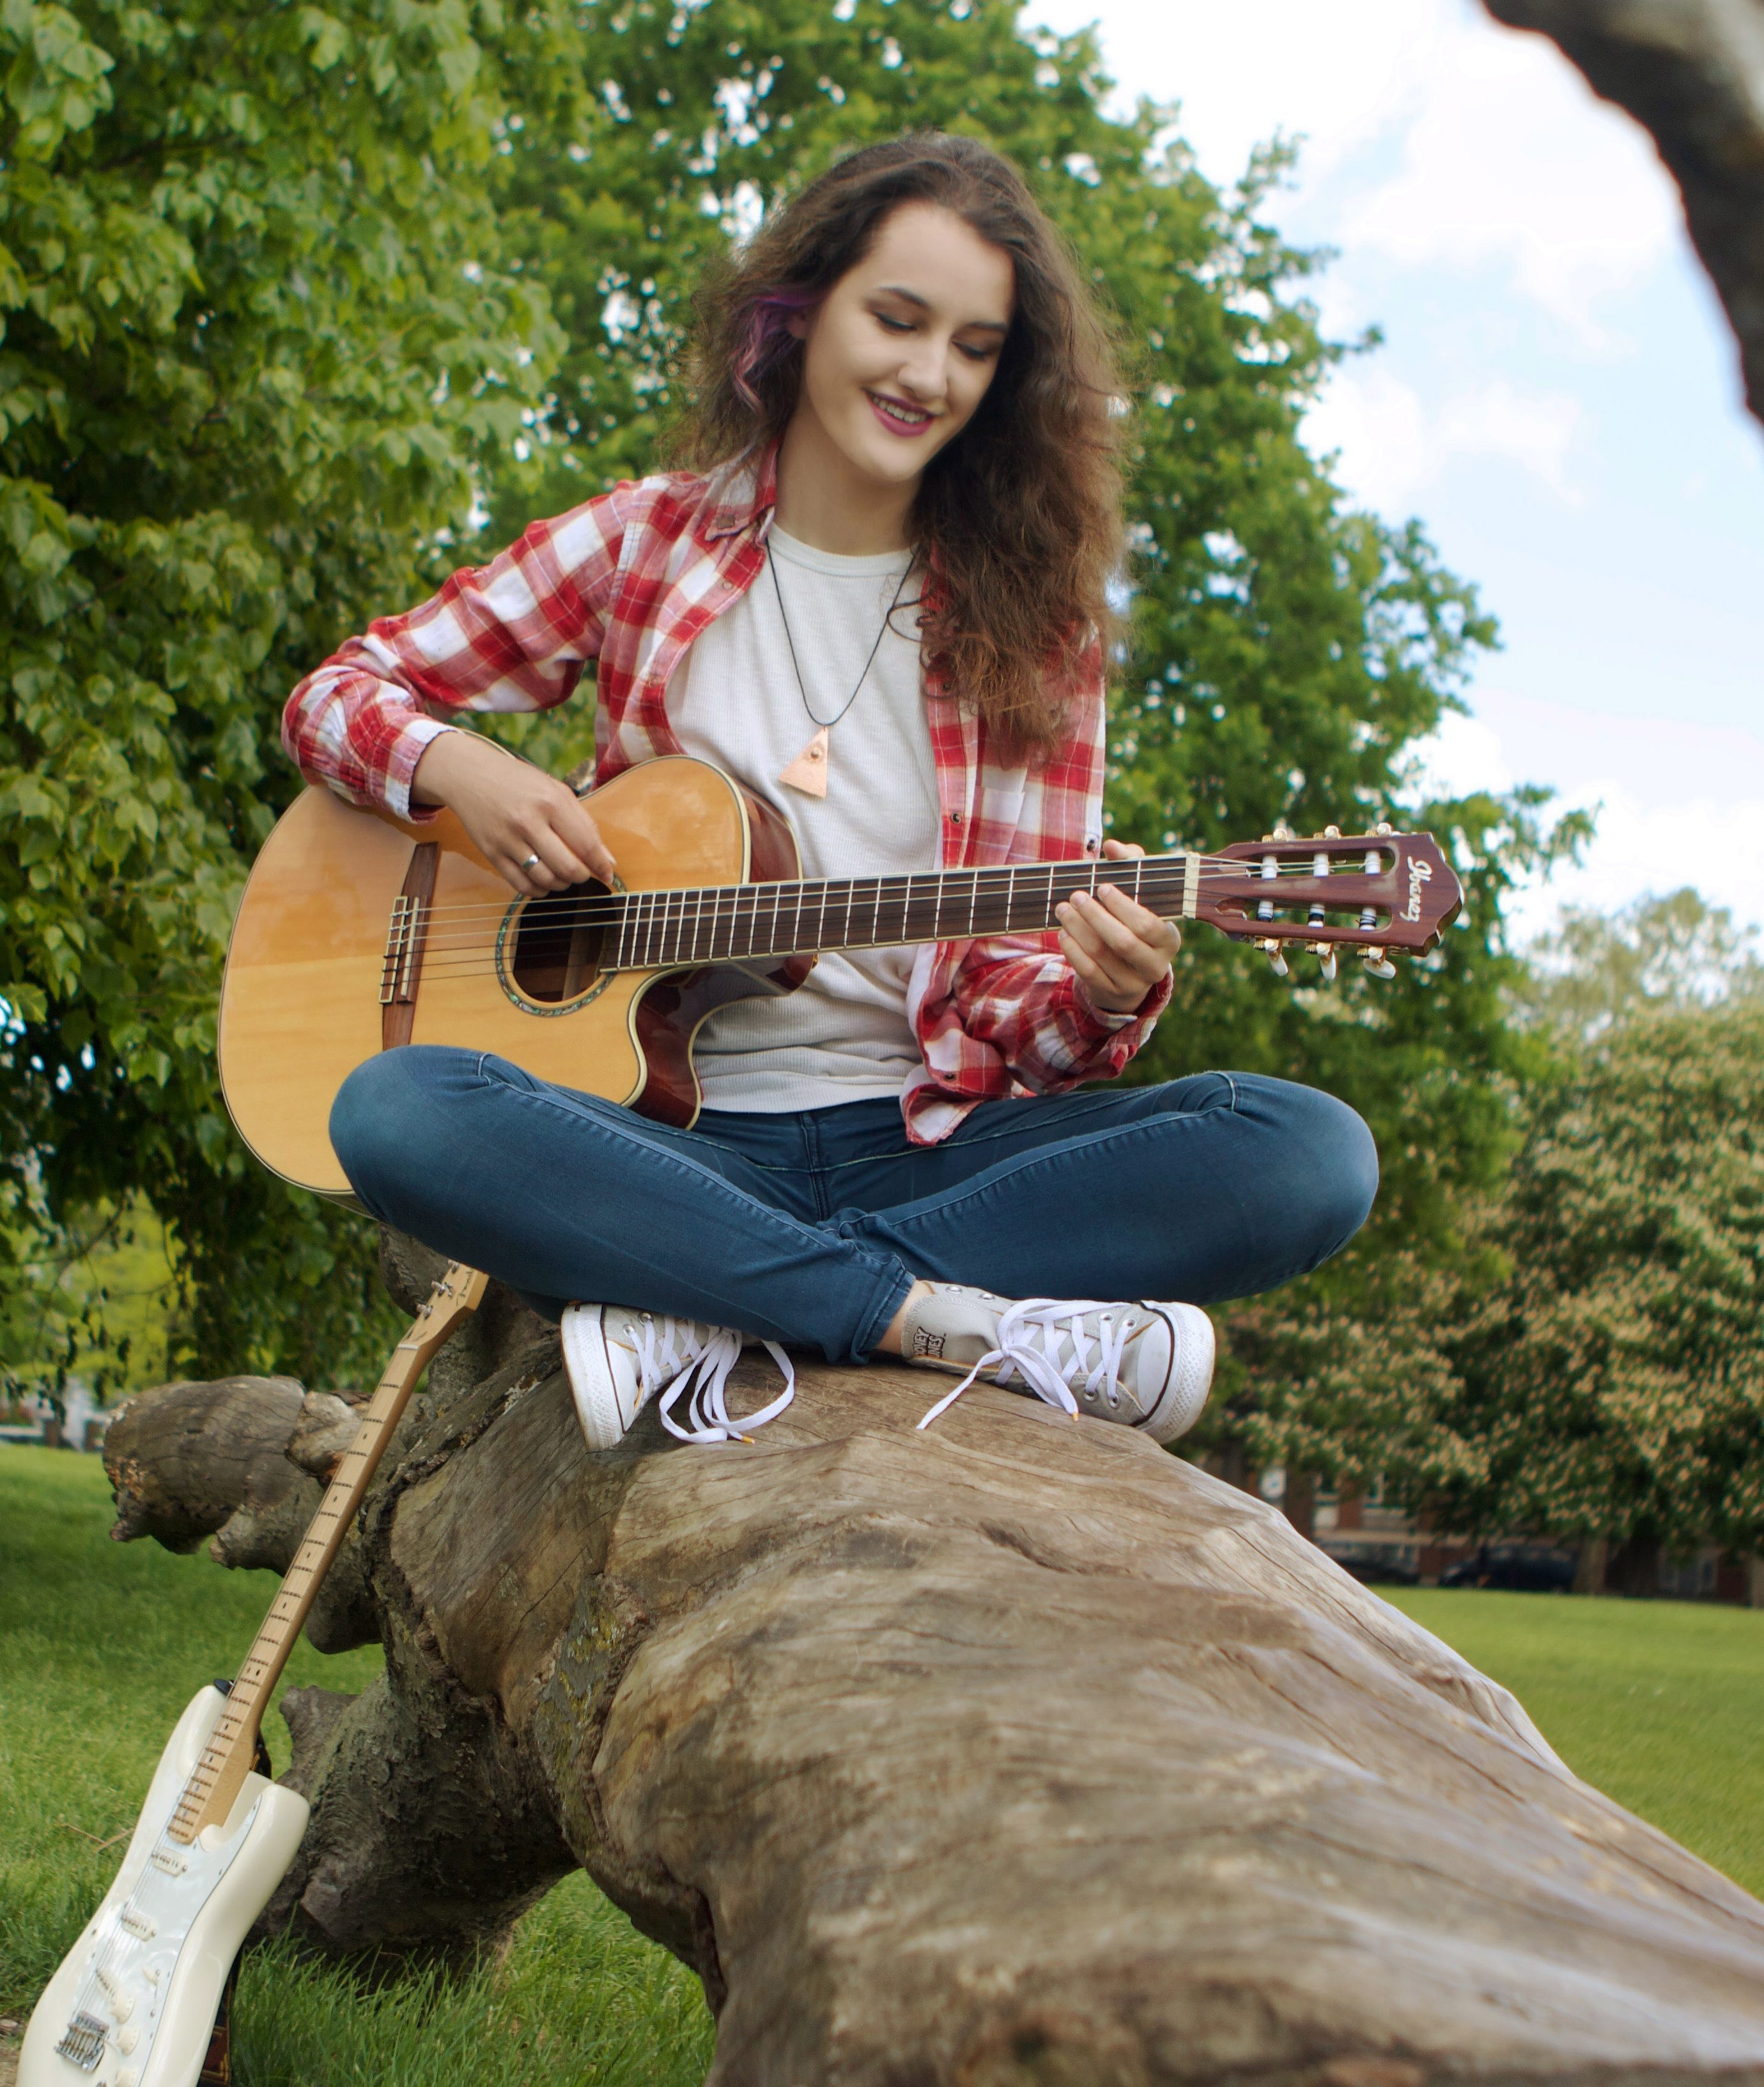 about Neli Playing Guitar in the park